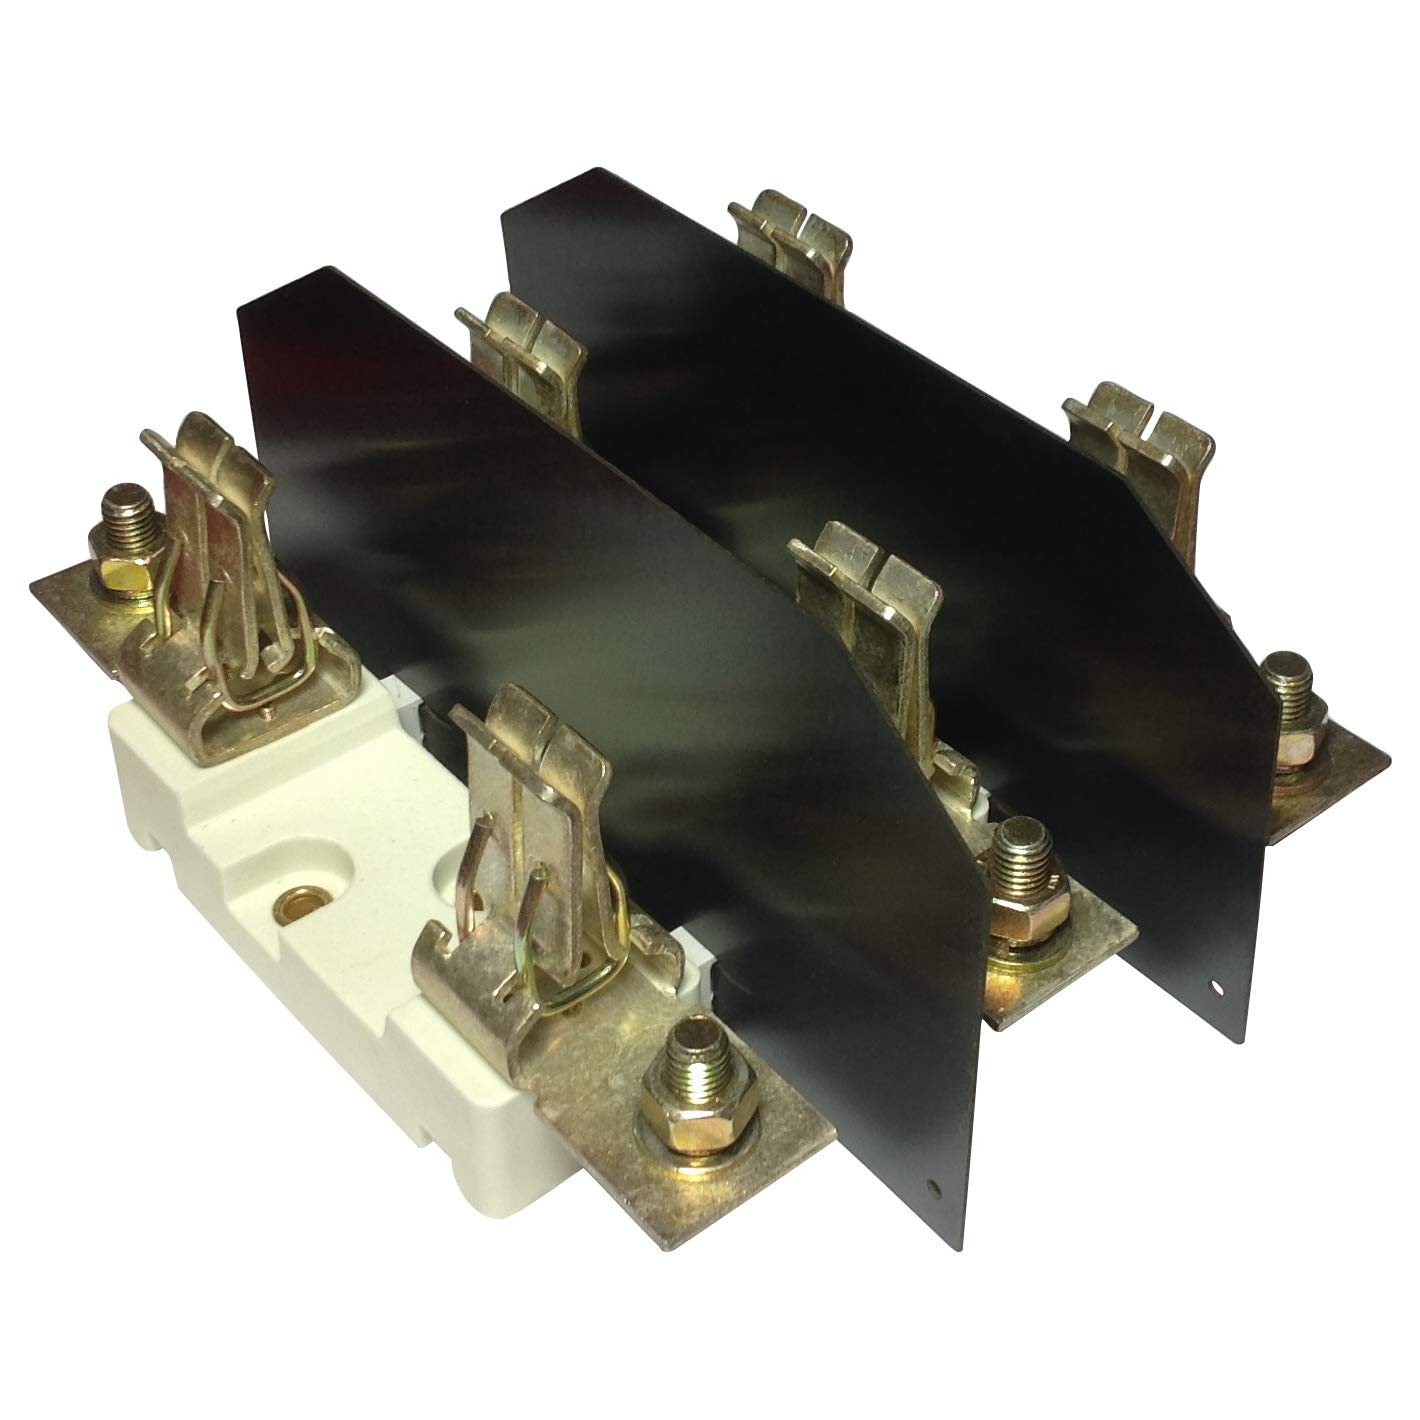 Be Outlet SALE super welcome 40512 MERSEN FERRAZ F FUSES for Holder NH3